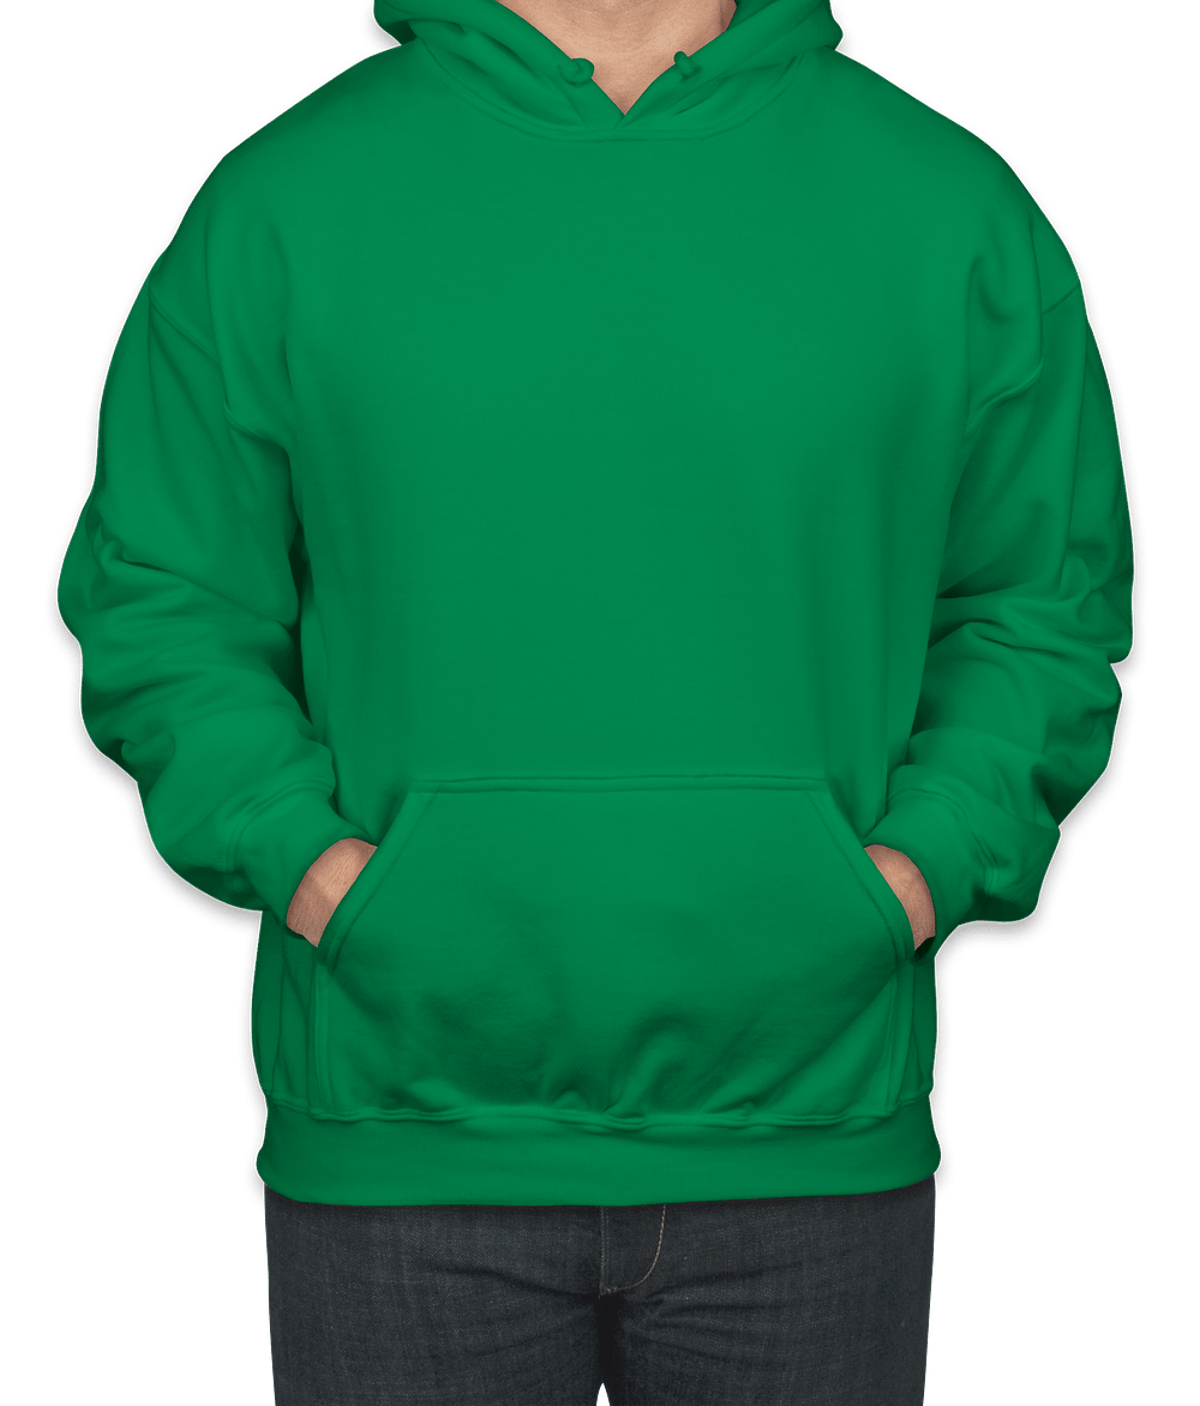 Youth Gildan Midweight 50/50 Pullover Hoodie